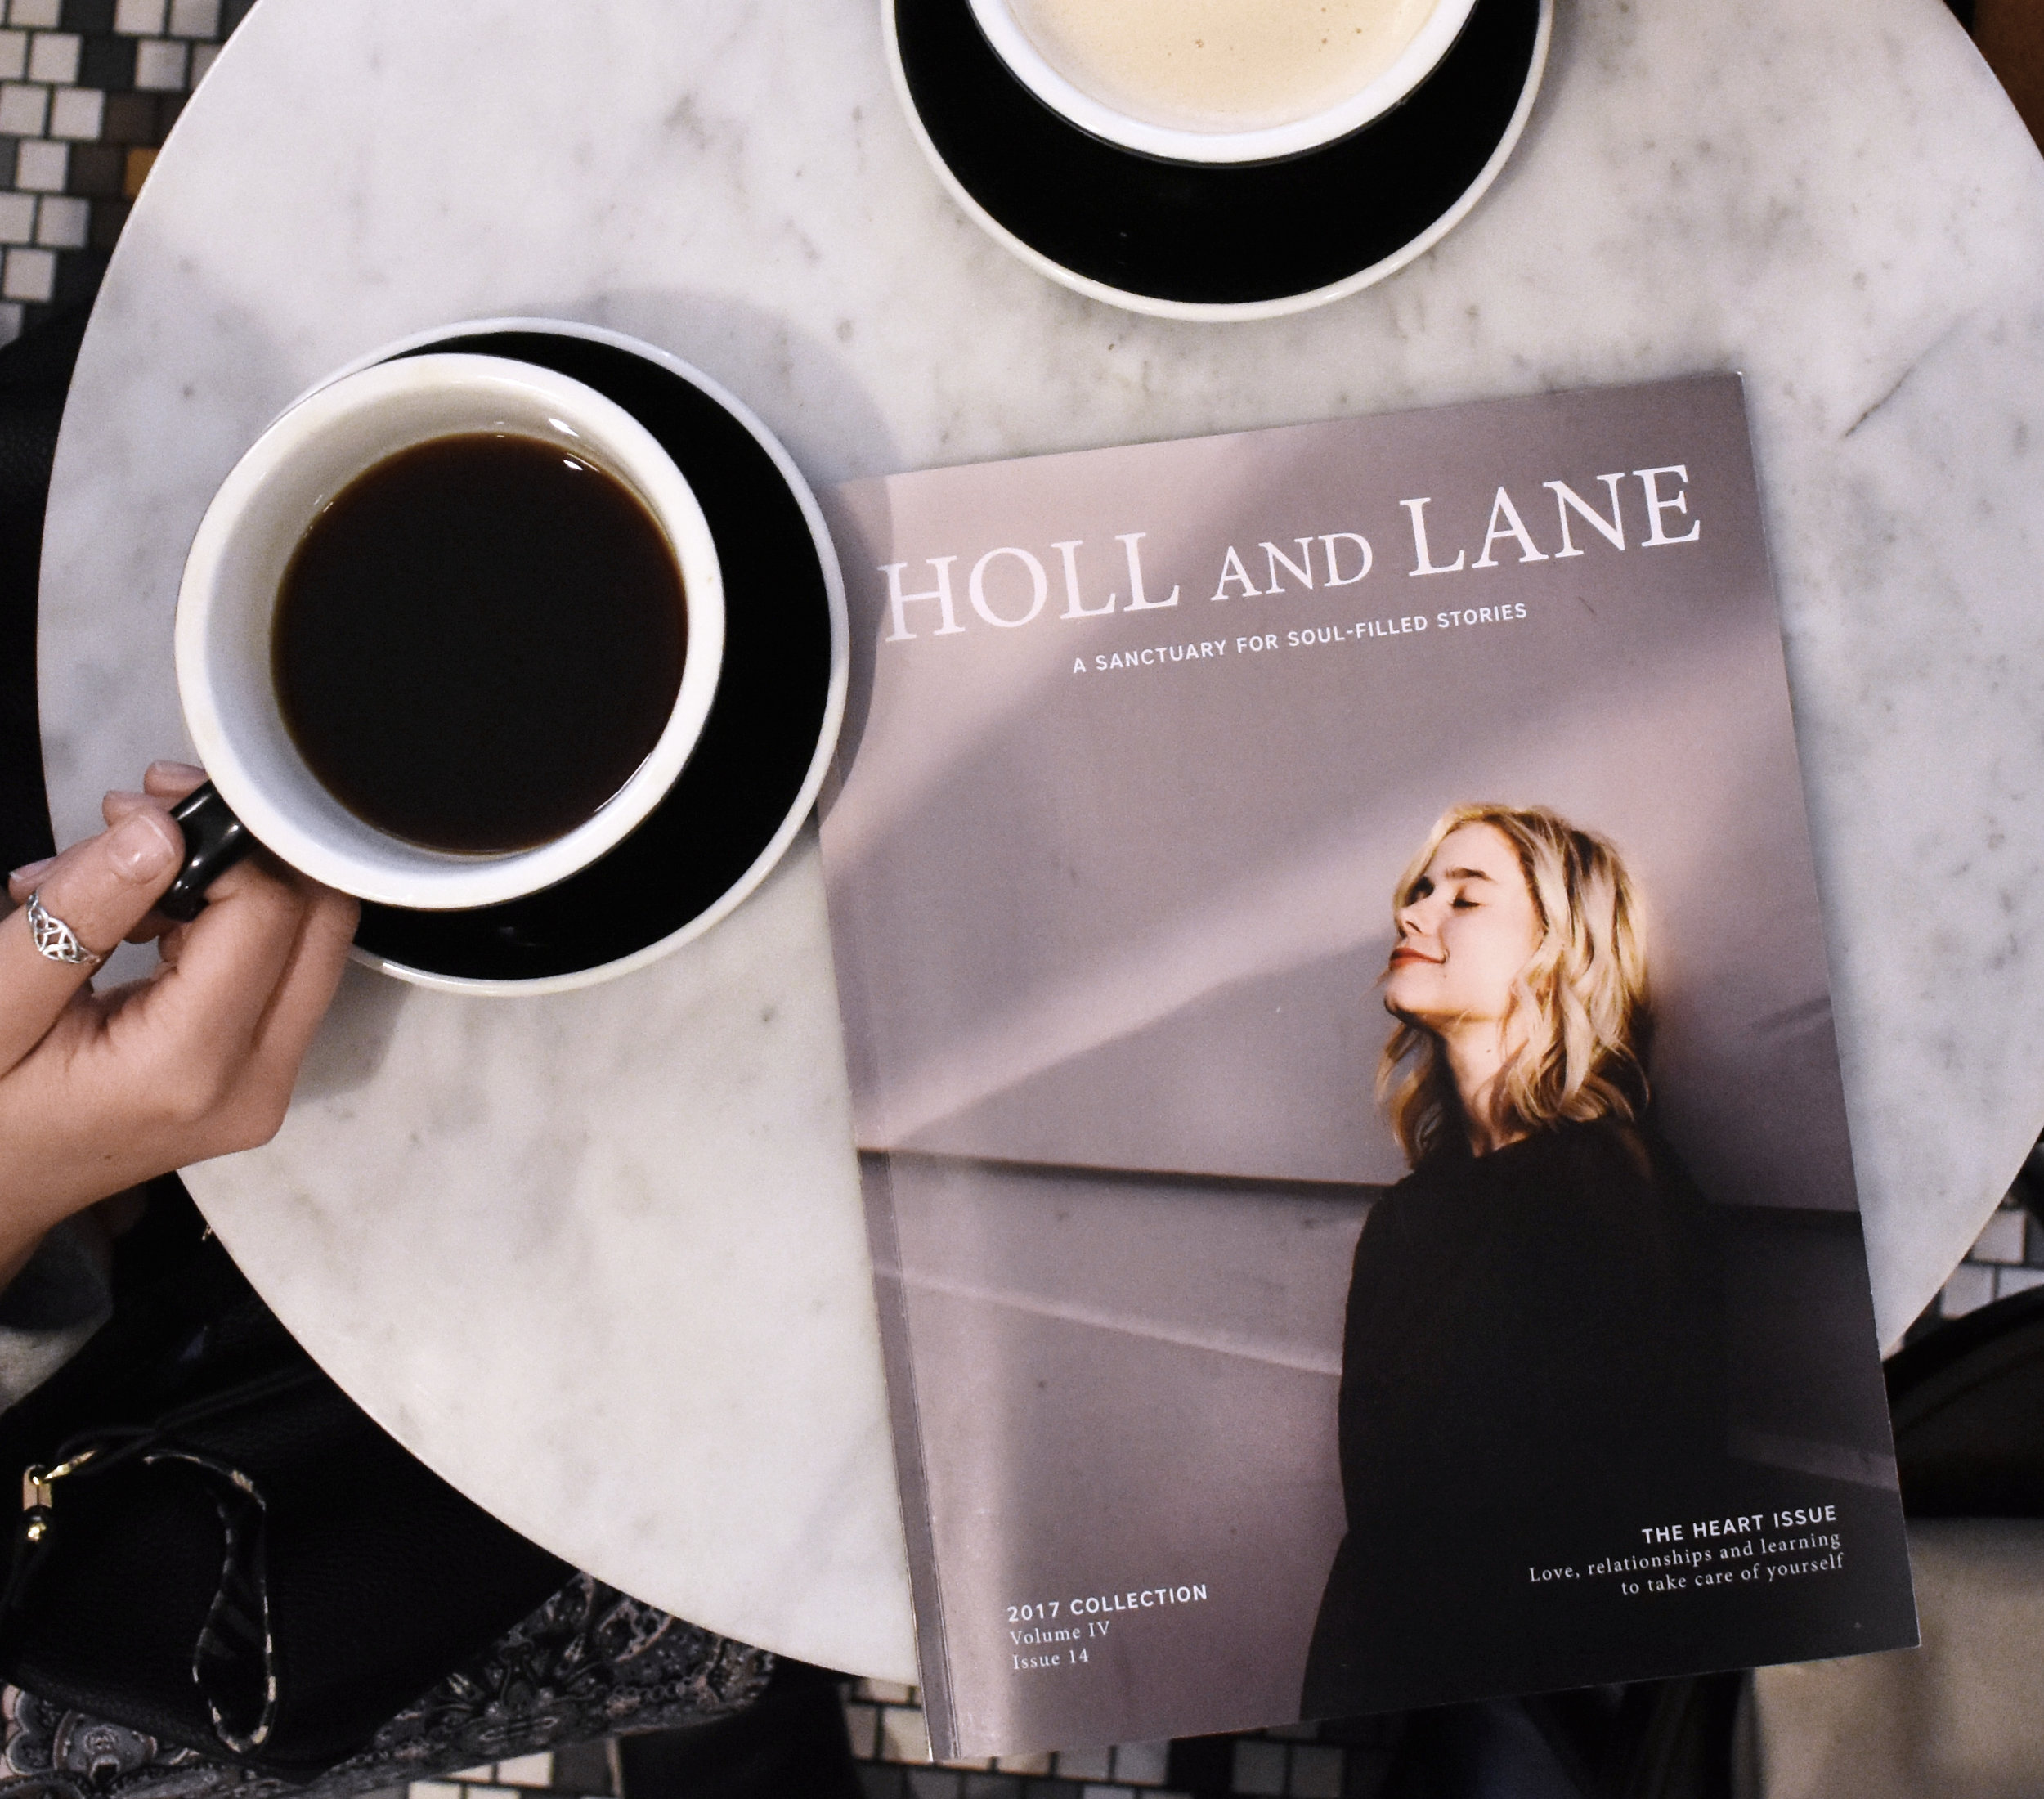 Holl and Lane Mag - As a TRFE listener you can save $3 off the print or digital version of Issue 14, The Heart. Or off the entire heart + body bundle when you snag both issue 13 and issue 14. Head over to www.hollandlanemag.com and use promo code TRFE for $3 off.